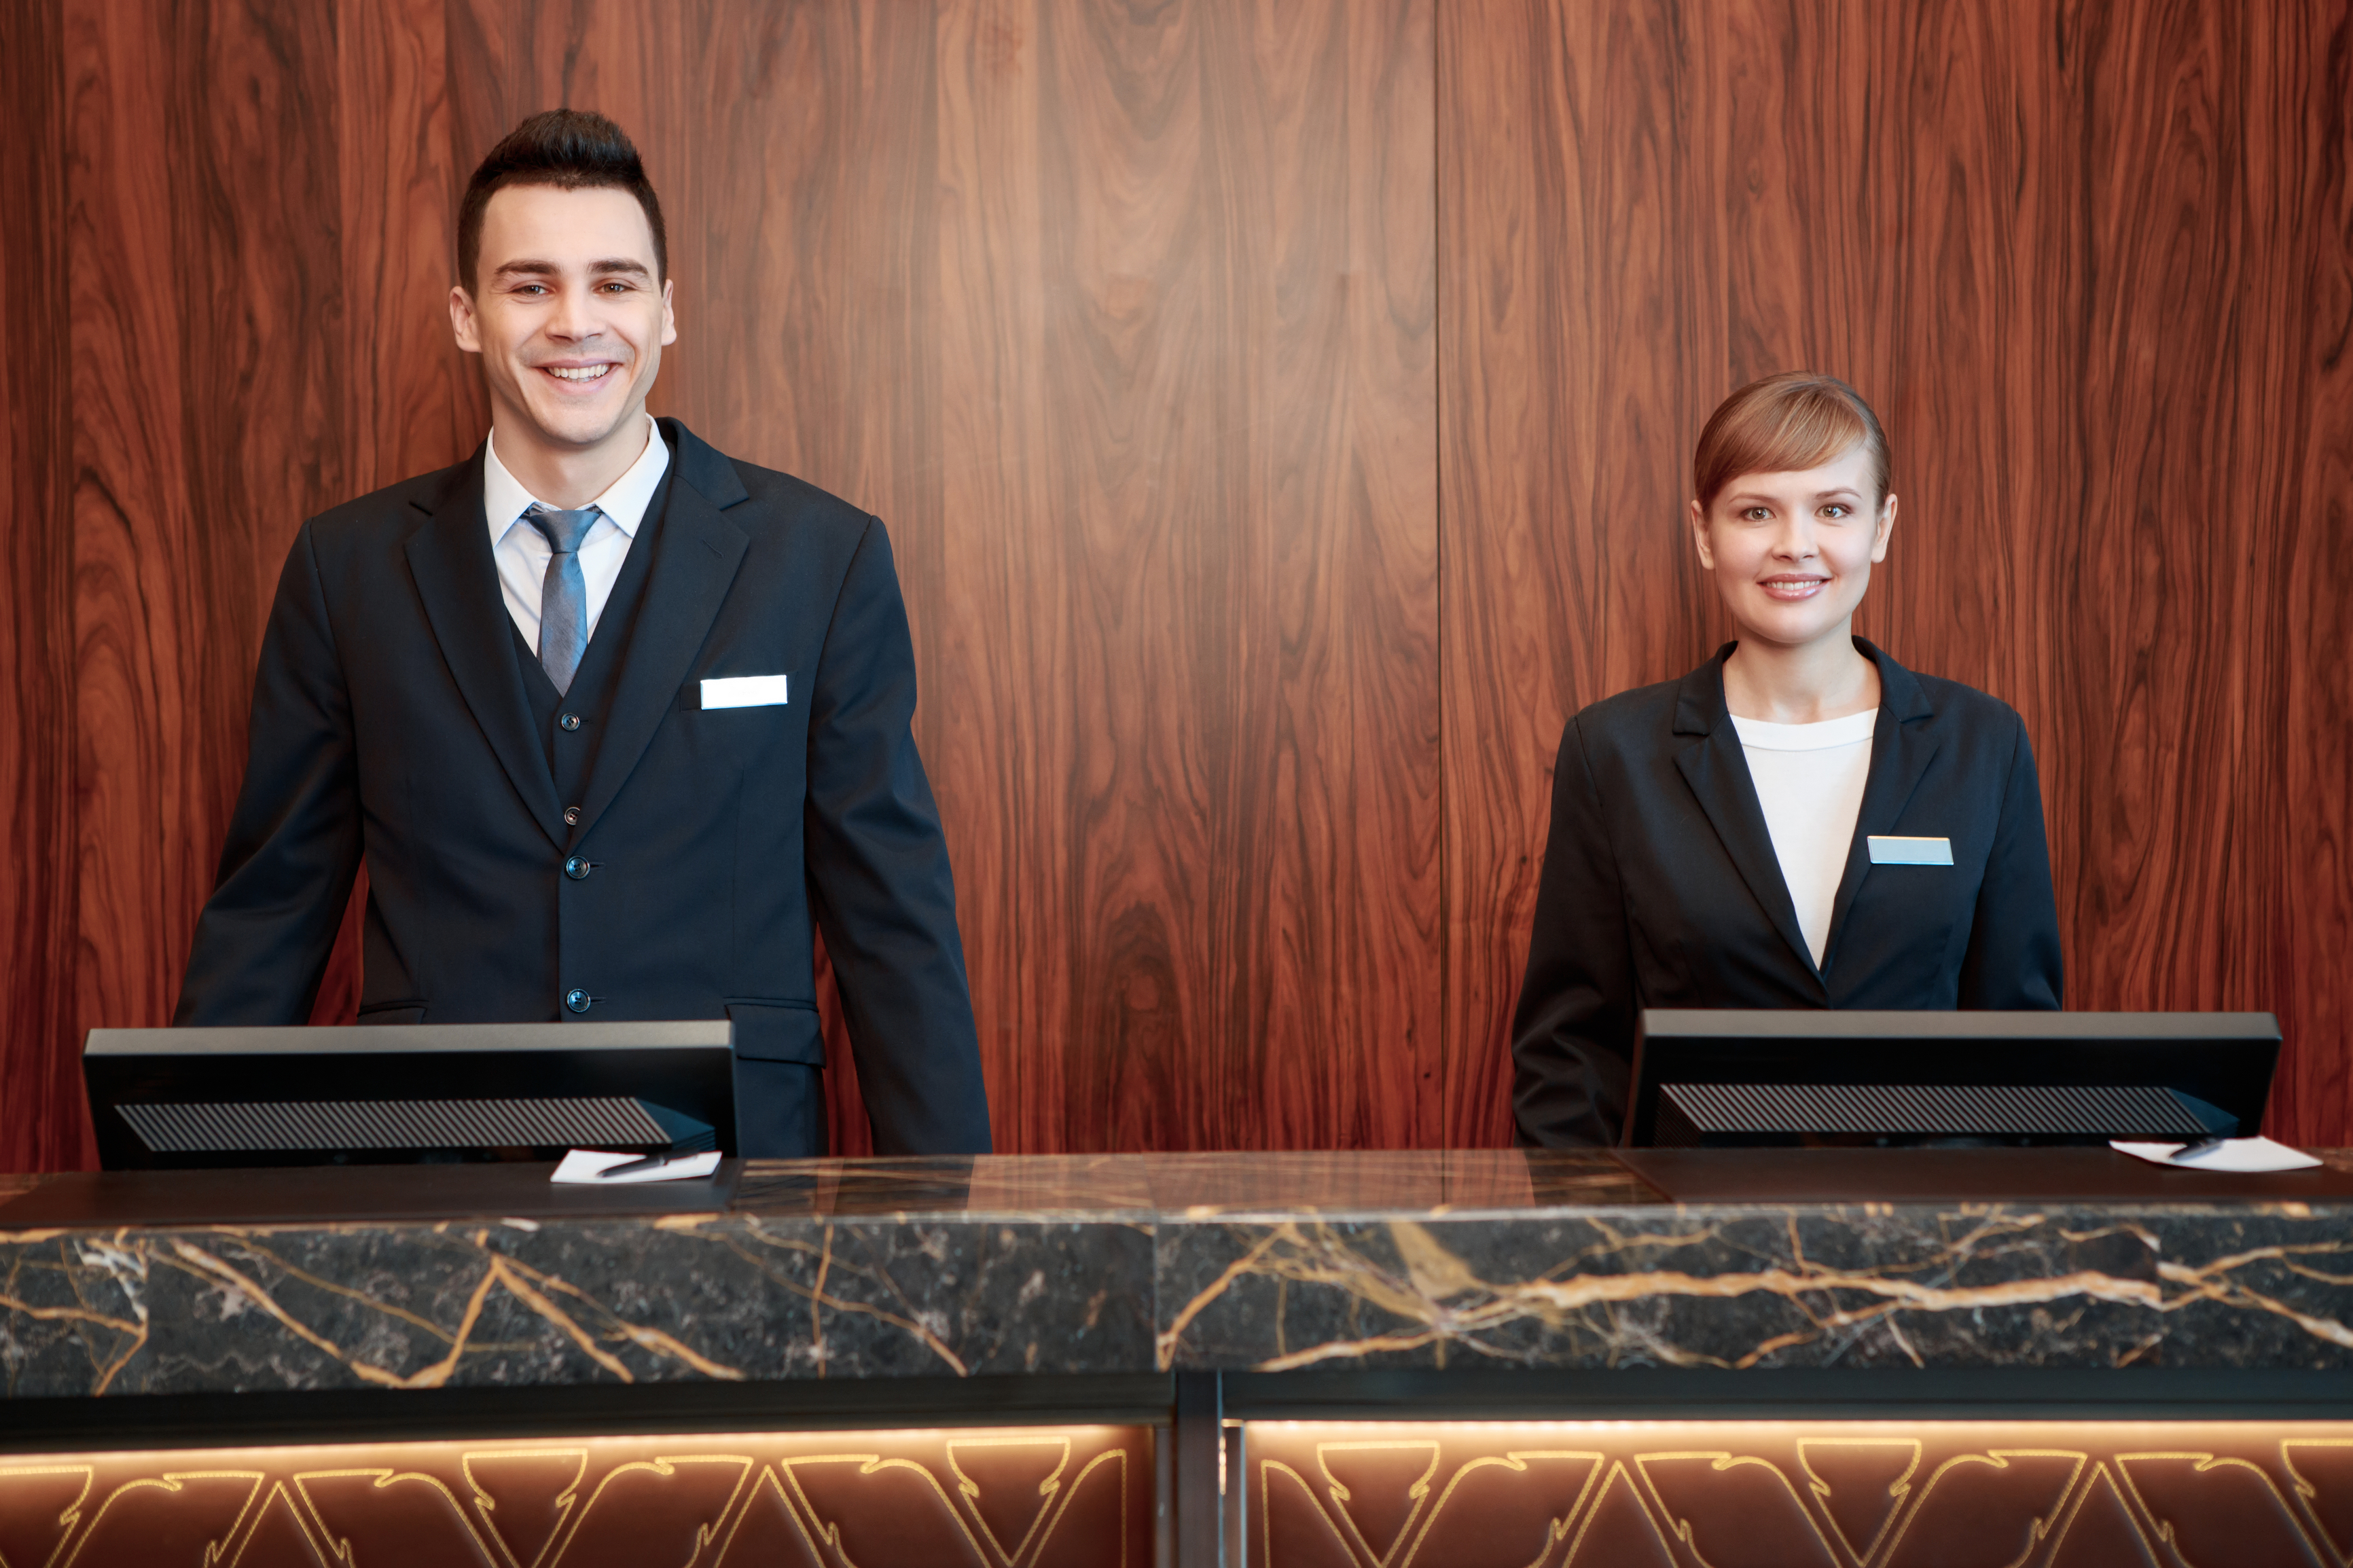 hotel front desk man and woman